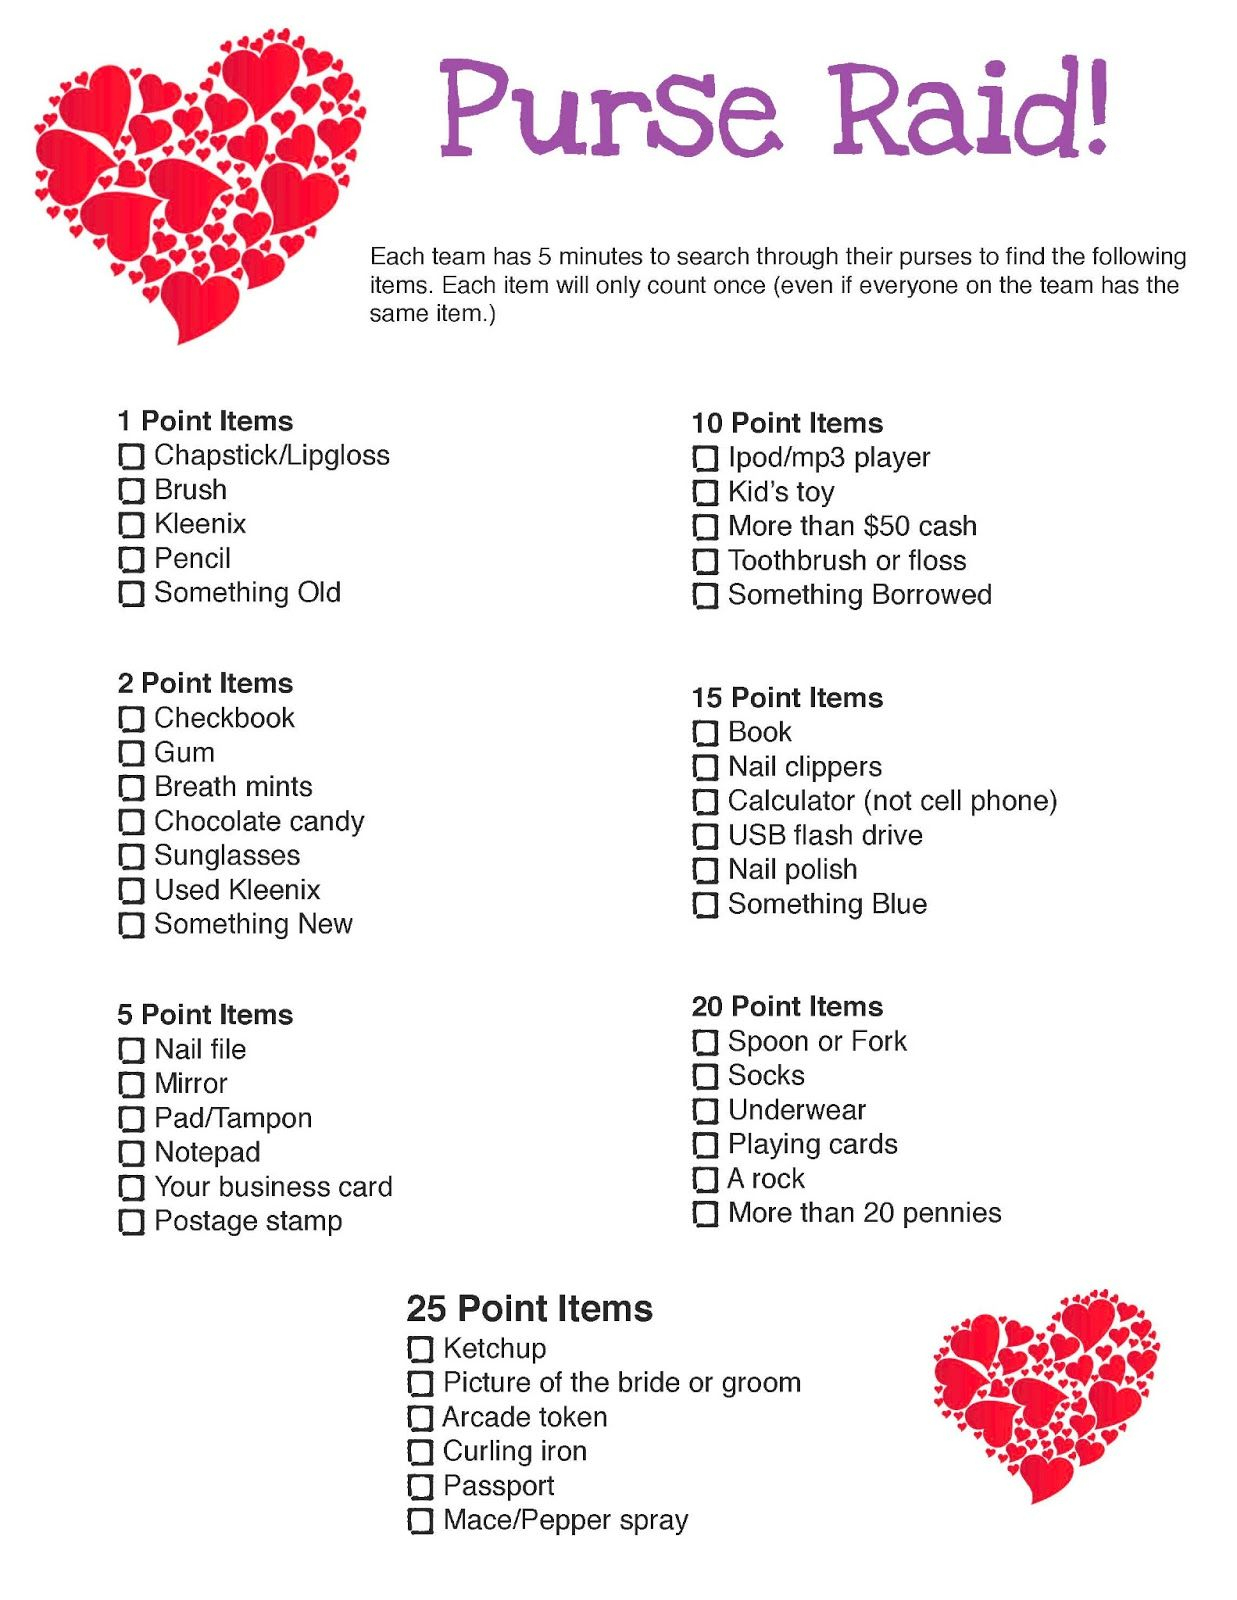 Bridal Shower Purse Raid Printable Game   Wedding/baby Shower Stuff - Free Printable Bridal Shower Games What's In Your Purse